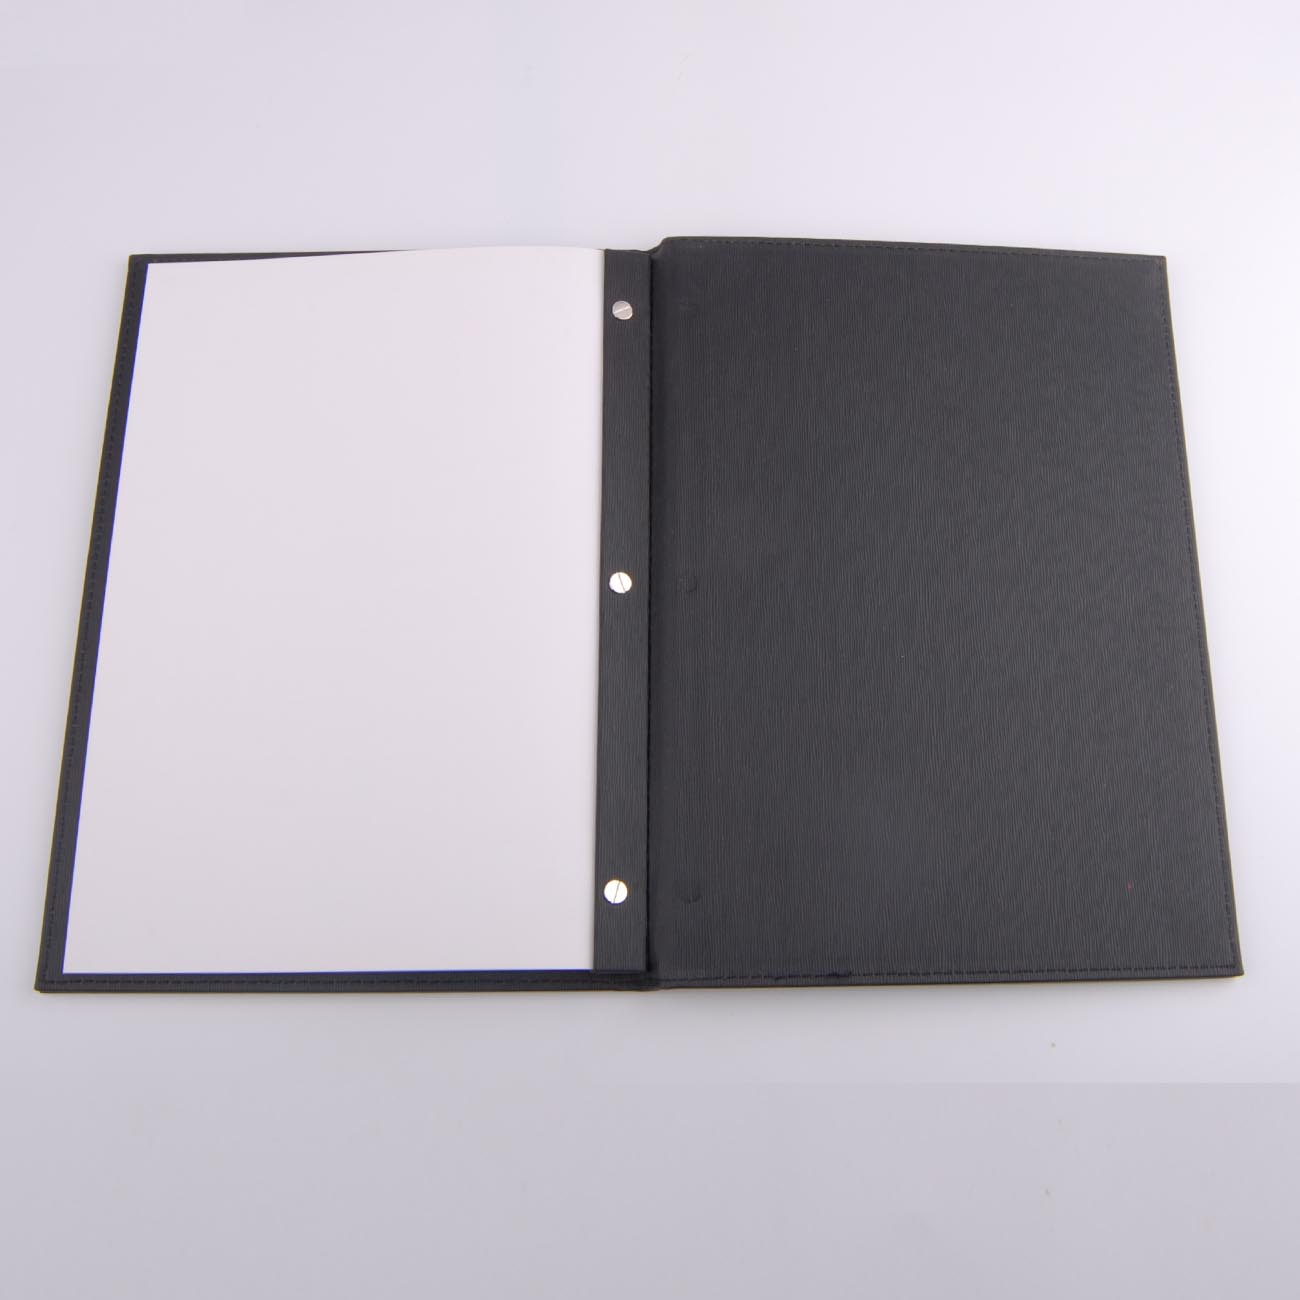 http://www.best-notebook.com/data/images/product/20170904114430_868.jpg